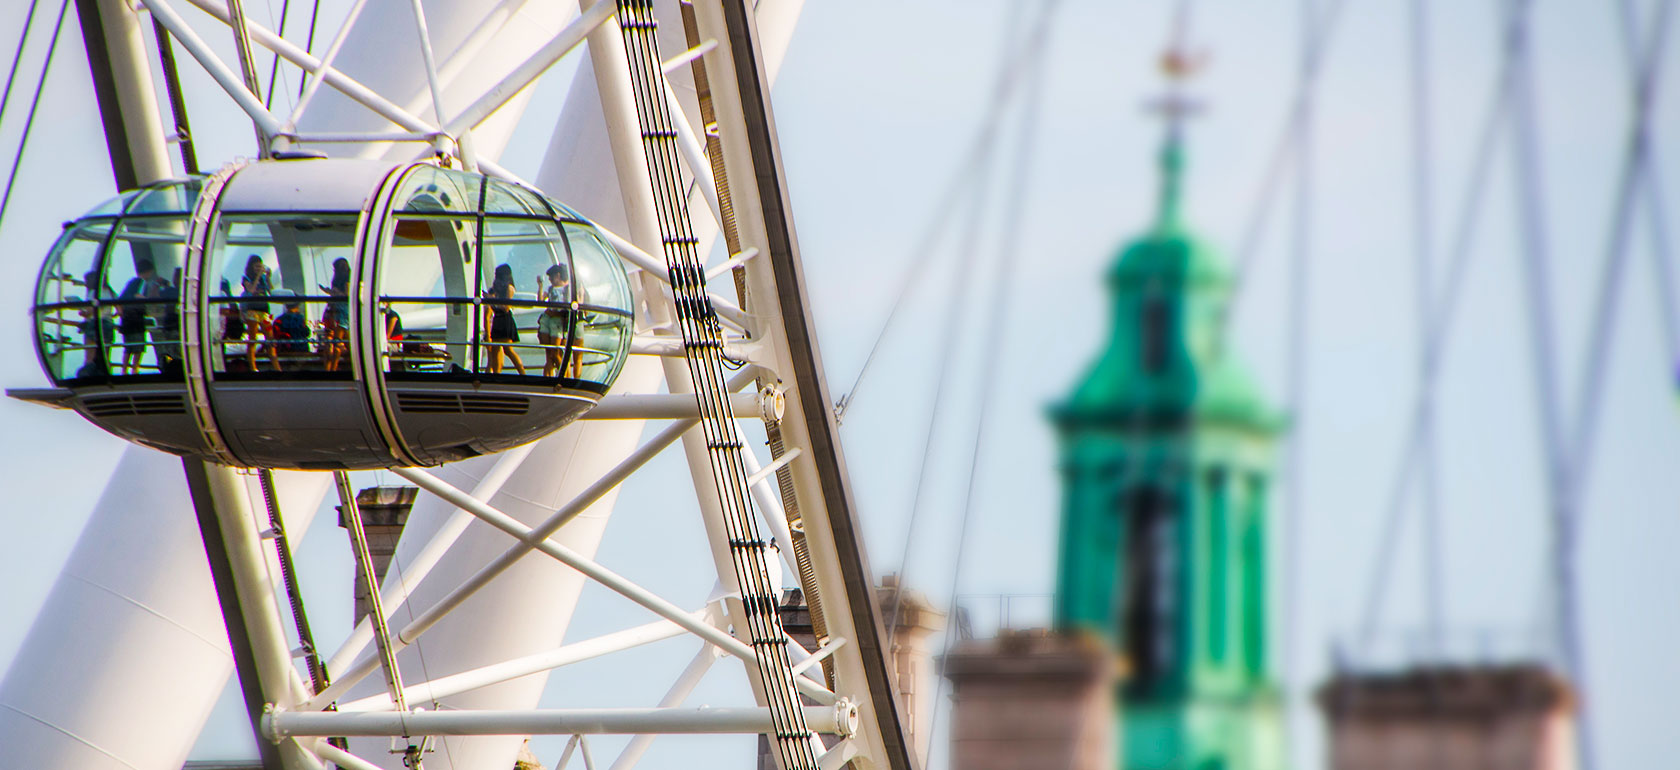 London Eye - Queue Rapide